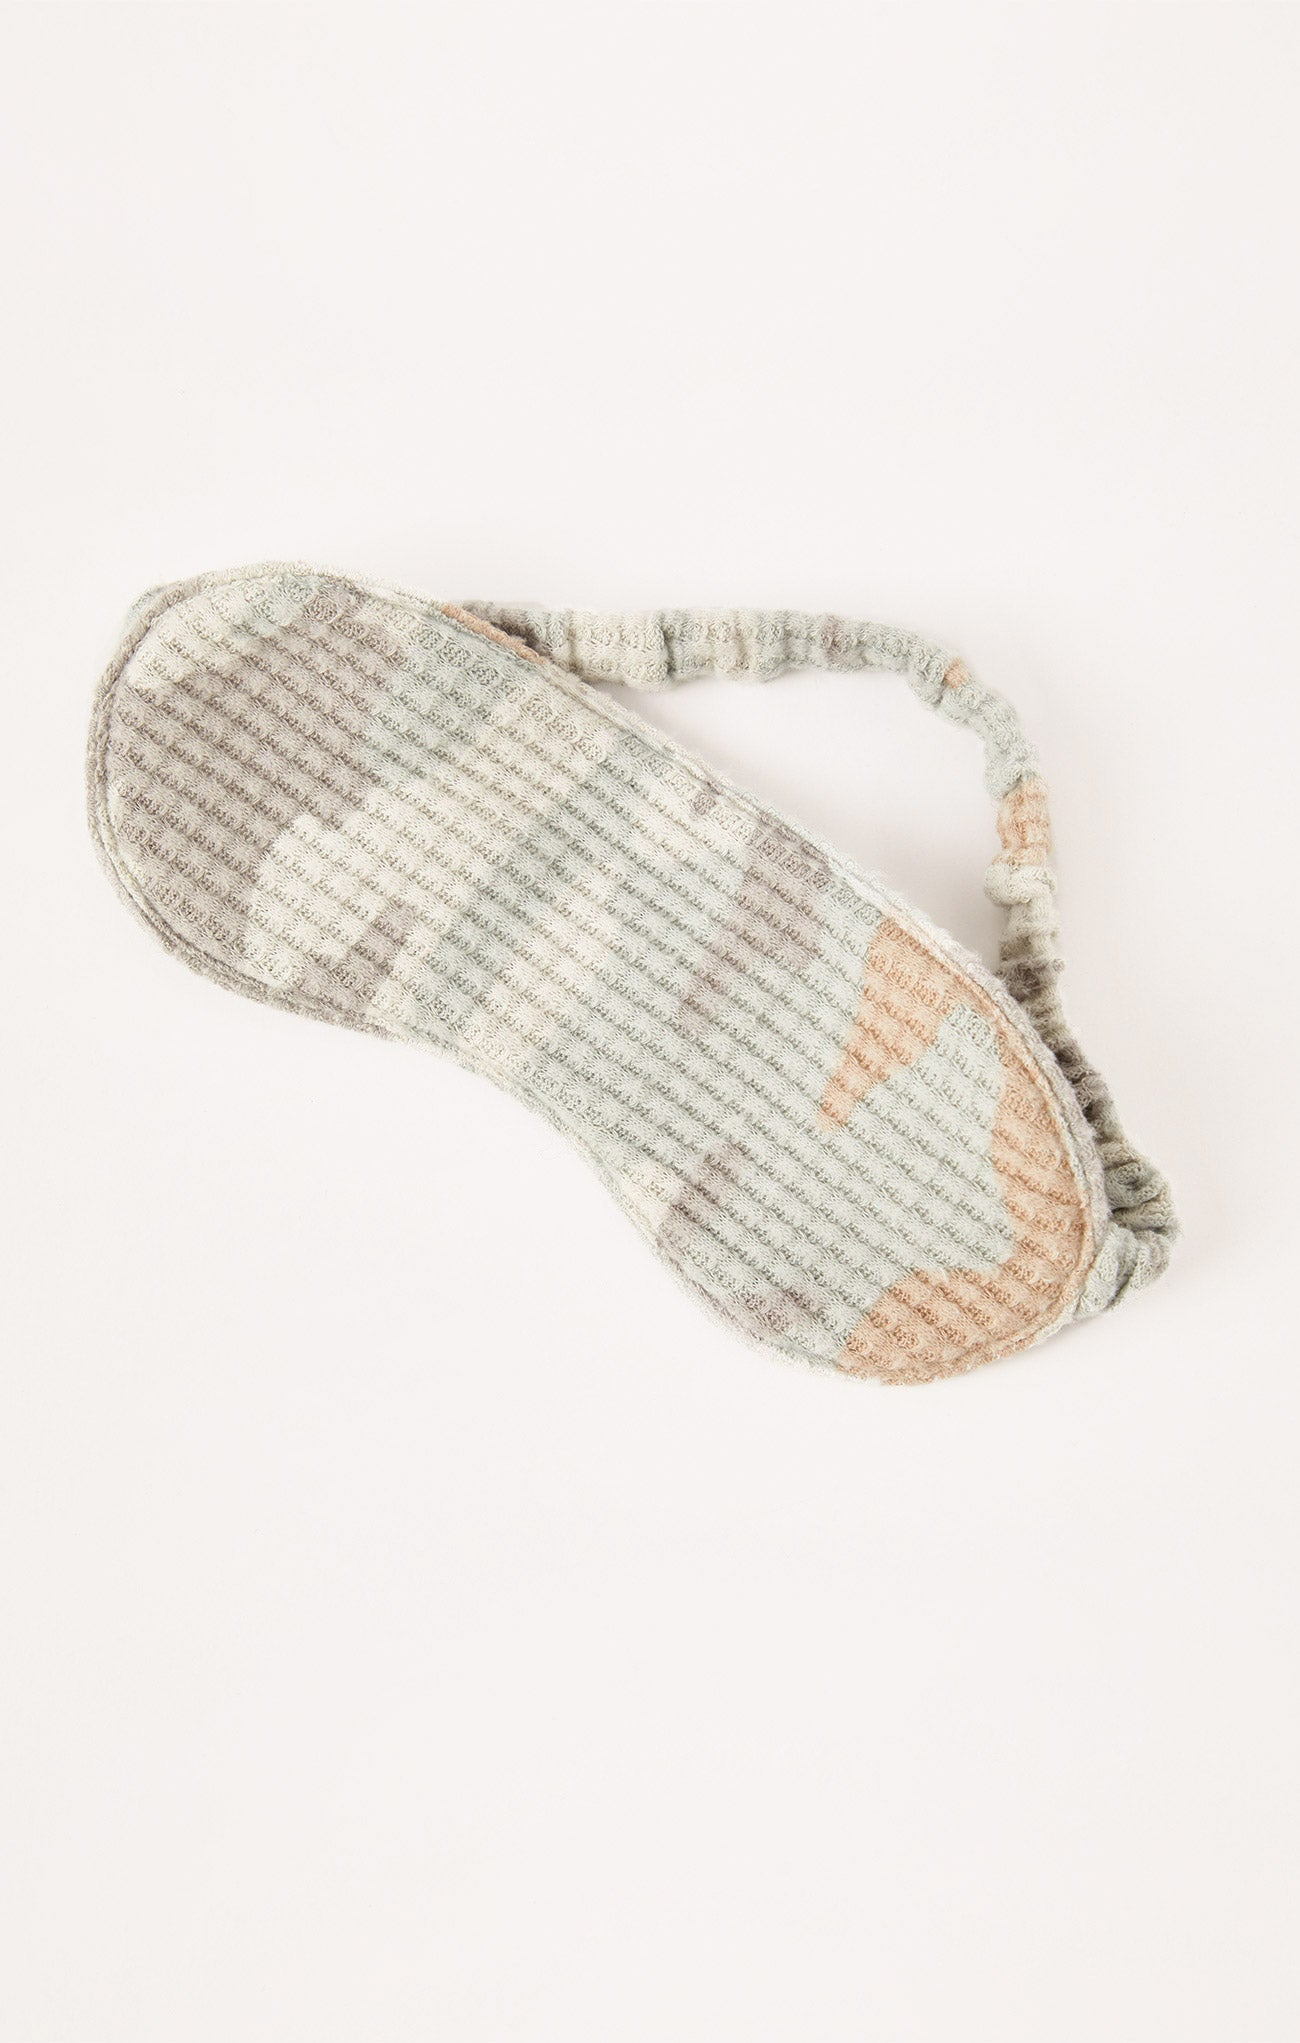 Accessories Camo Sleep Eye Mask Camo Sage Mist